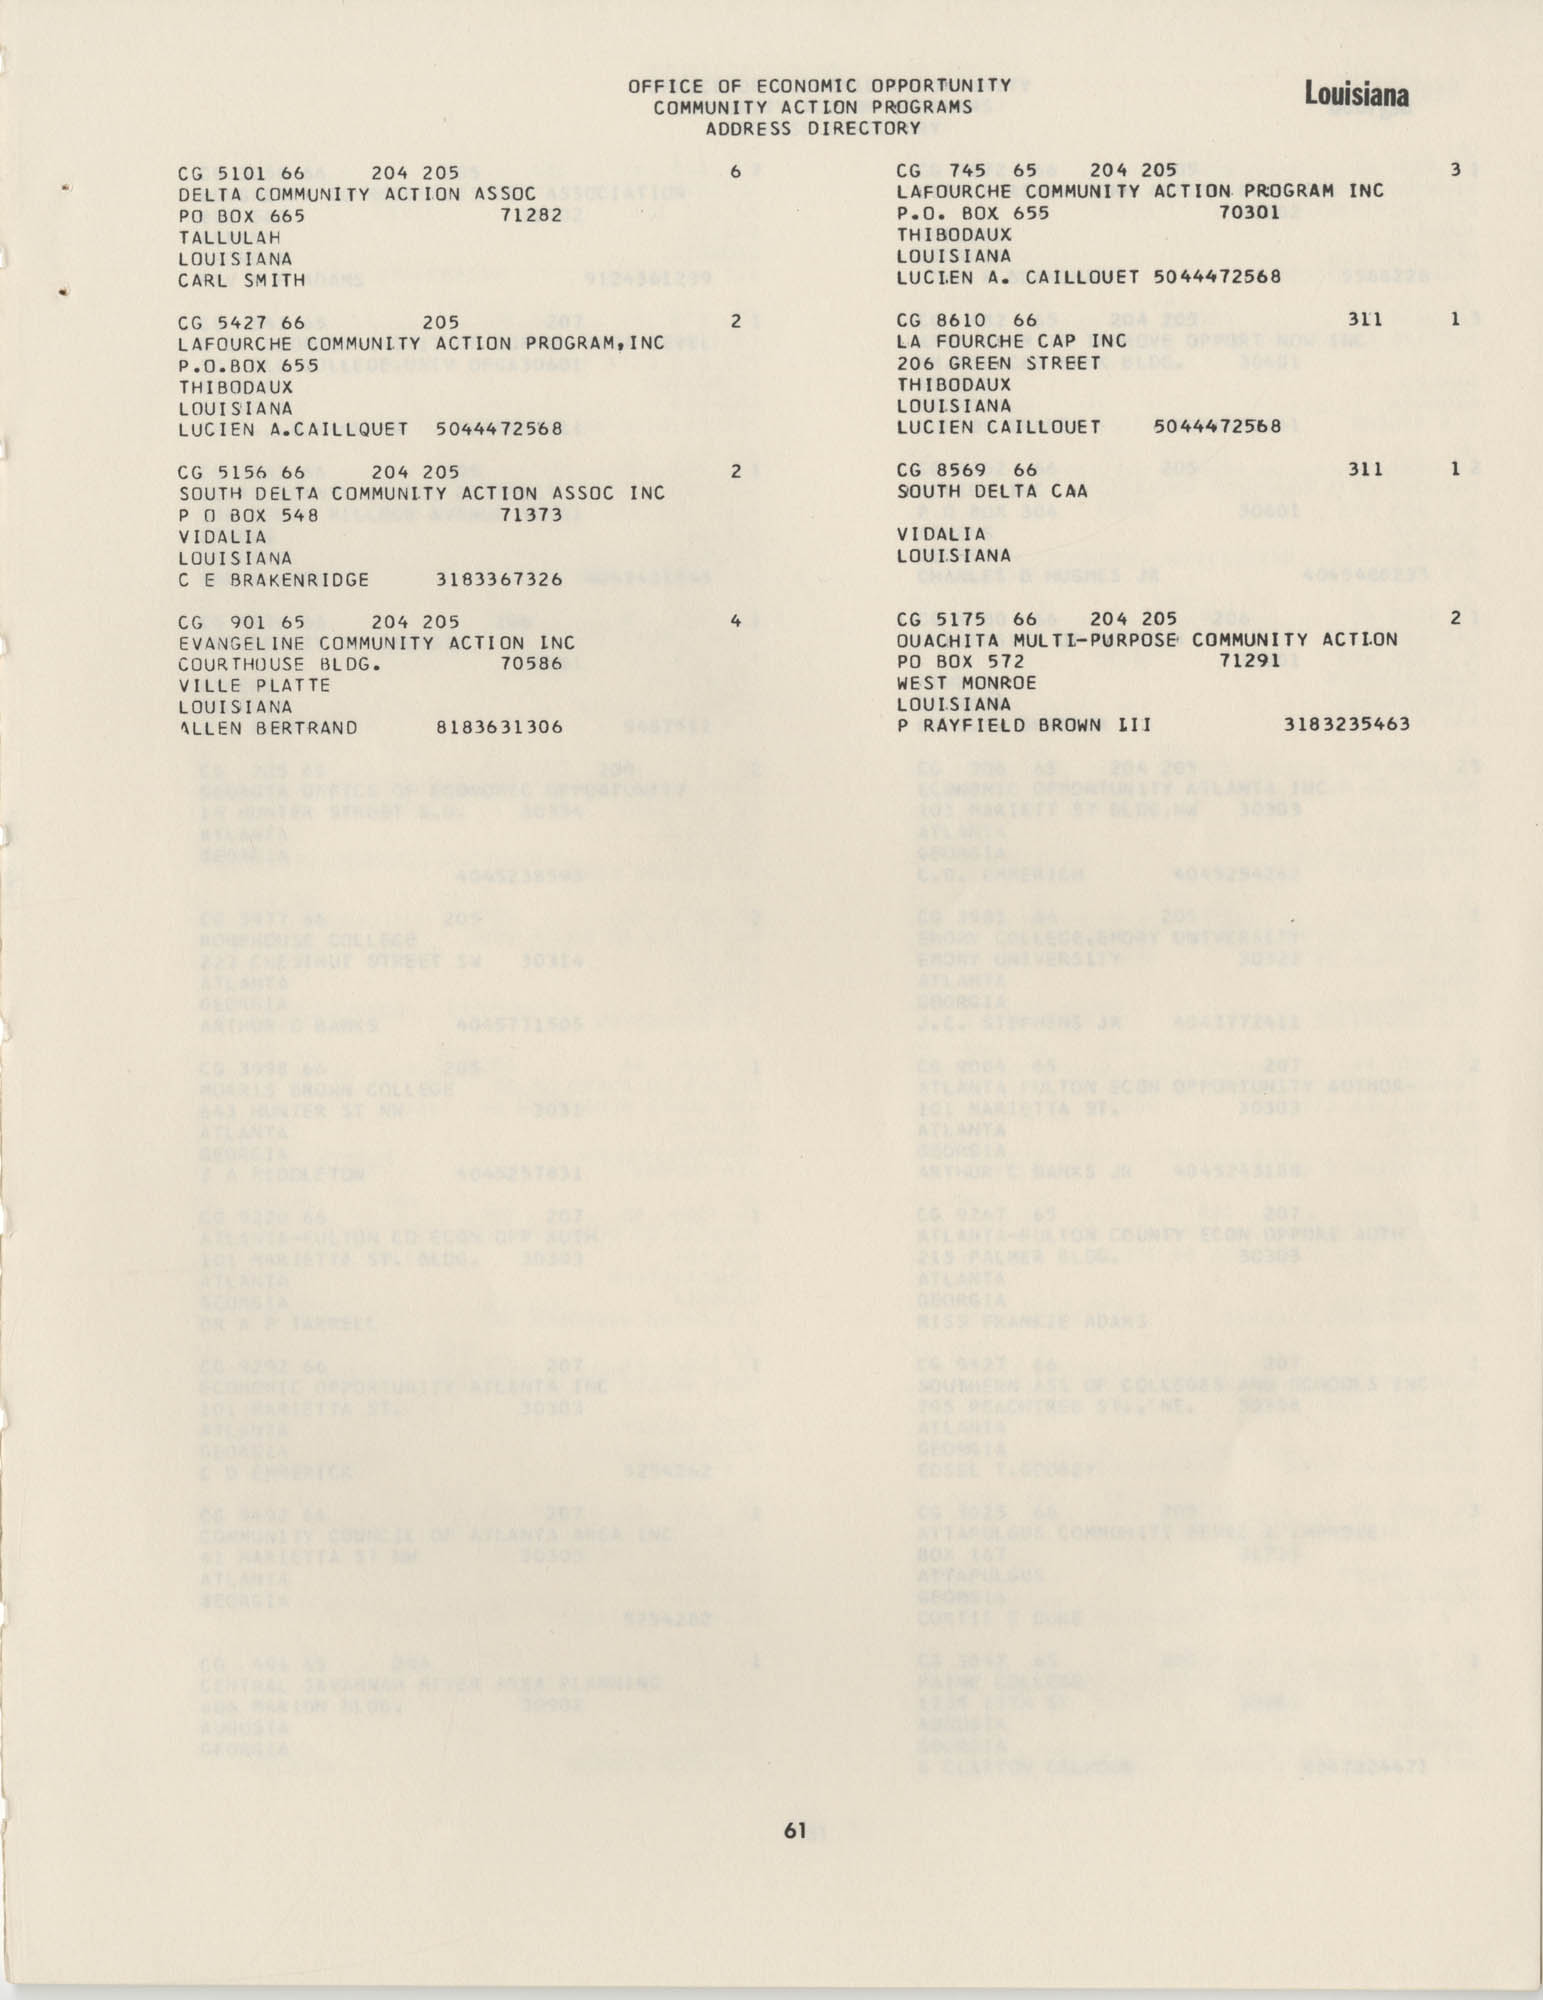 Community Action Programs Directory, June 15, 1966, Page 61